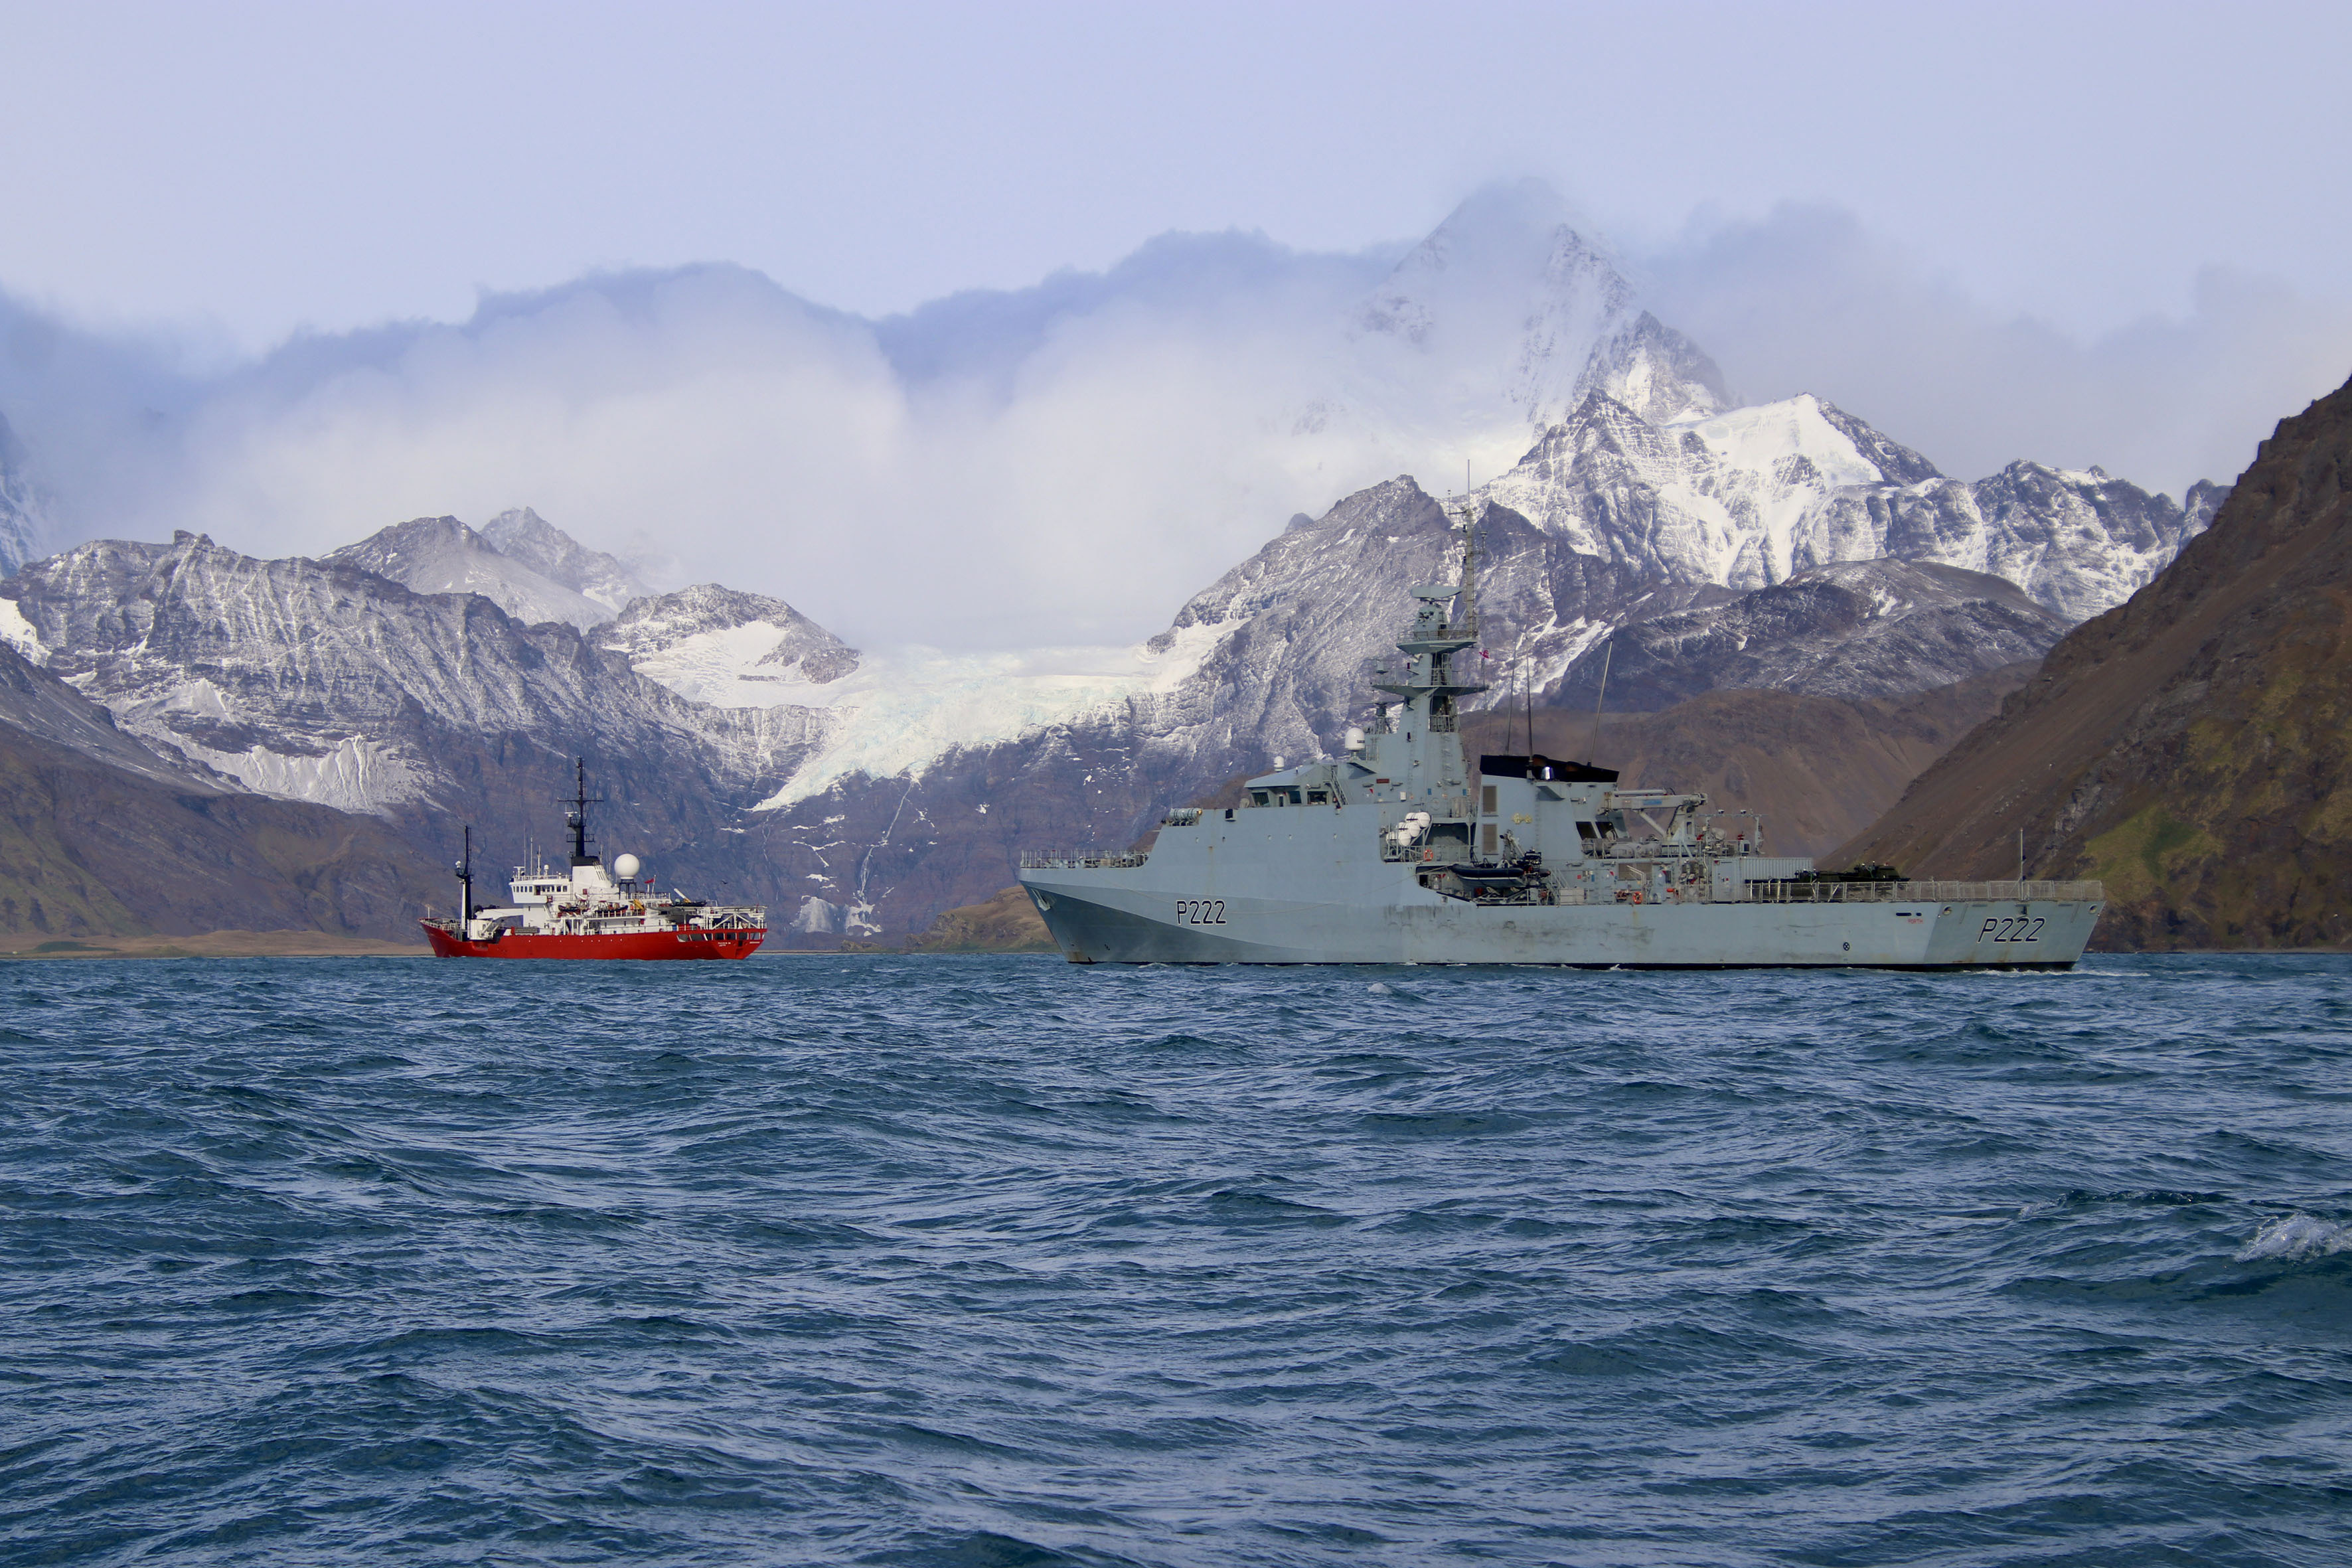 HMS Forth with fishery protection ship Pharos off the South Georgia coast